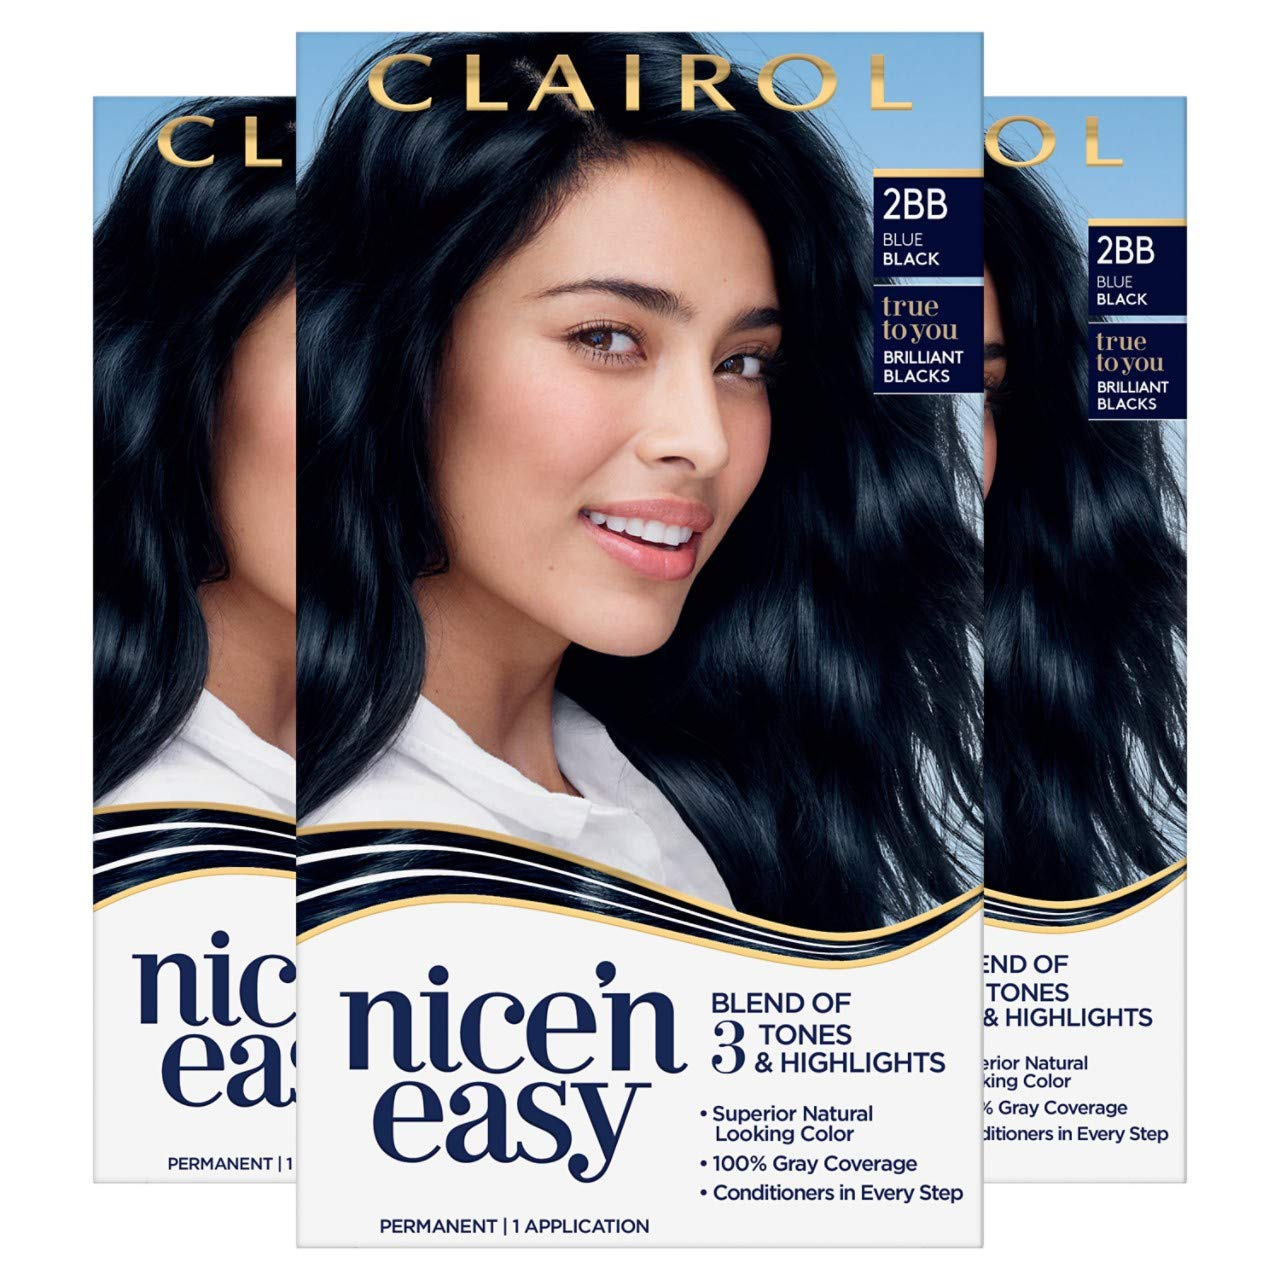 Clairol Nice'n Easy Permanent Hair Color, 9BB Blue Black, 9 Count